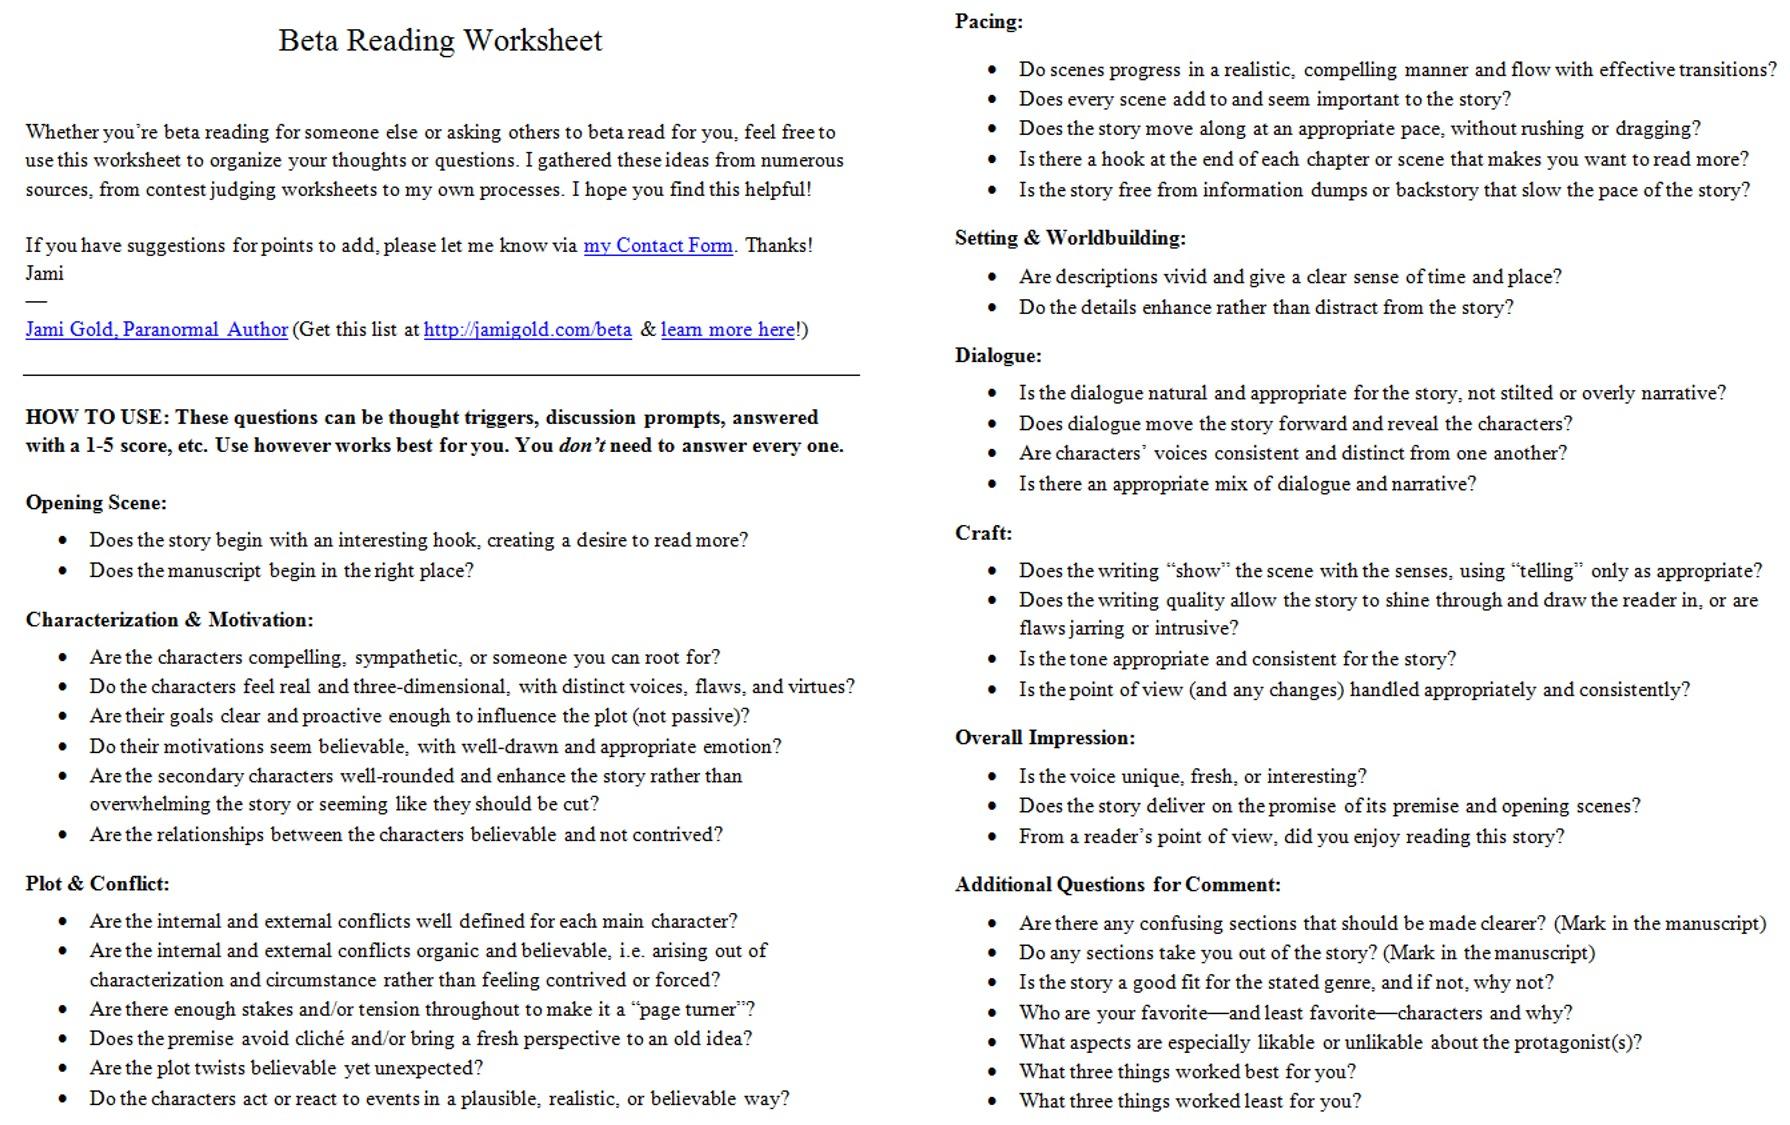 Weirdmailus  Seductive Worksheets For Writers  Jami Gold Paranormal Author With Engaging Screen Shot Of The Twopage Beta Reading Worksheet With Divine Probability Of Independent And Dependent Events Worksheet Also Numbers Worksheet For Kindergarten In Addition Prime Factorization Tree Worksheet And Alphabet Trace Worksheet As Well As Free Printable Reading Worksheets For St Grade Additionally Units Of Length Worksheet From Jamigoldcom With Weirdmailus  Engaging Worksheets For Writers  Jami Gold Paranormal Author With Divine Screen Shot Of The Twopage Beta Reading Worksheet And Seductive Probability Of Independent And Dependent Events Worksheet Also Numbers Worksheet For Kindergarten In Addition Prime Factorization Tree Worksheet From Jamigoldcom